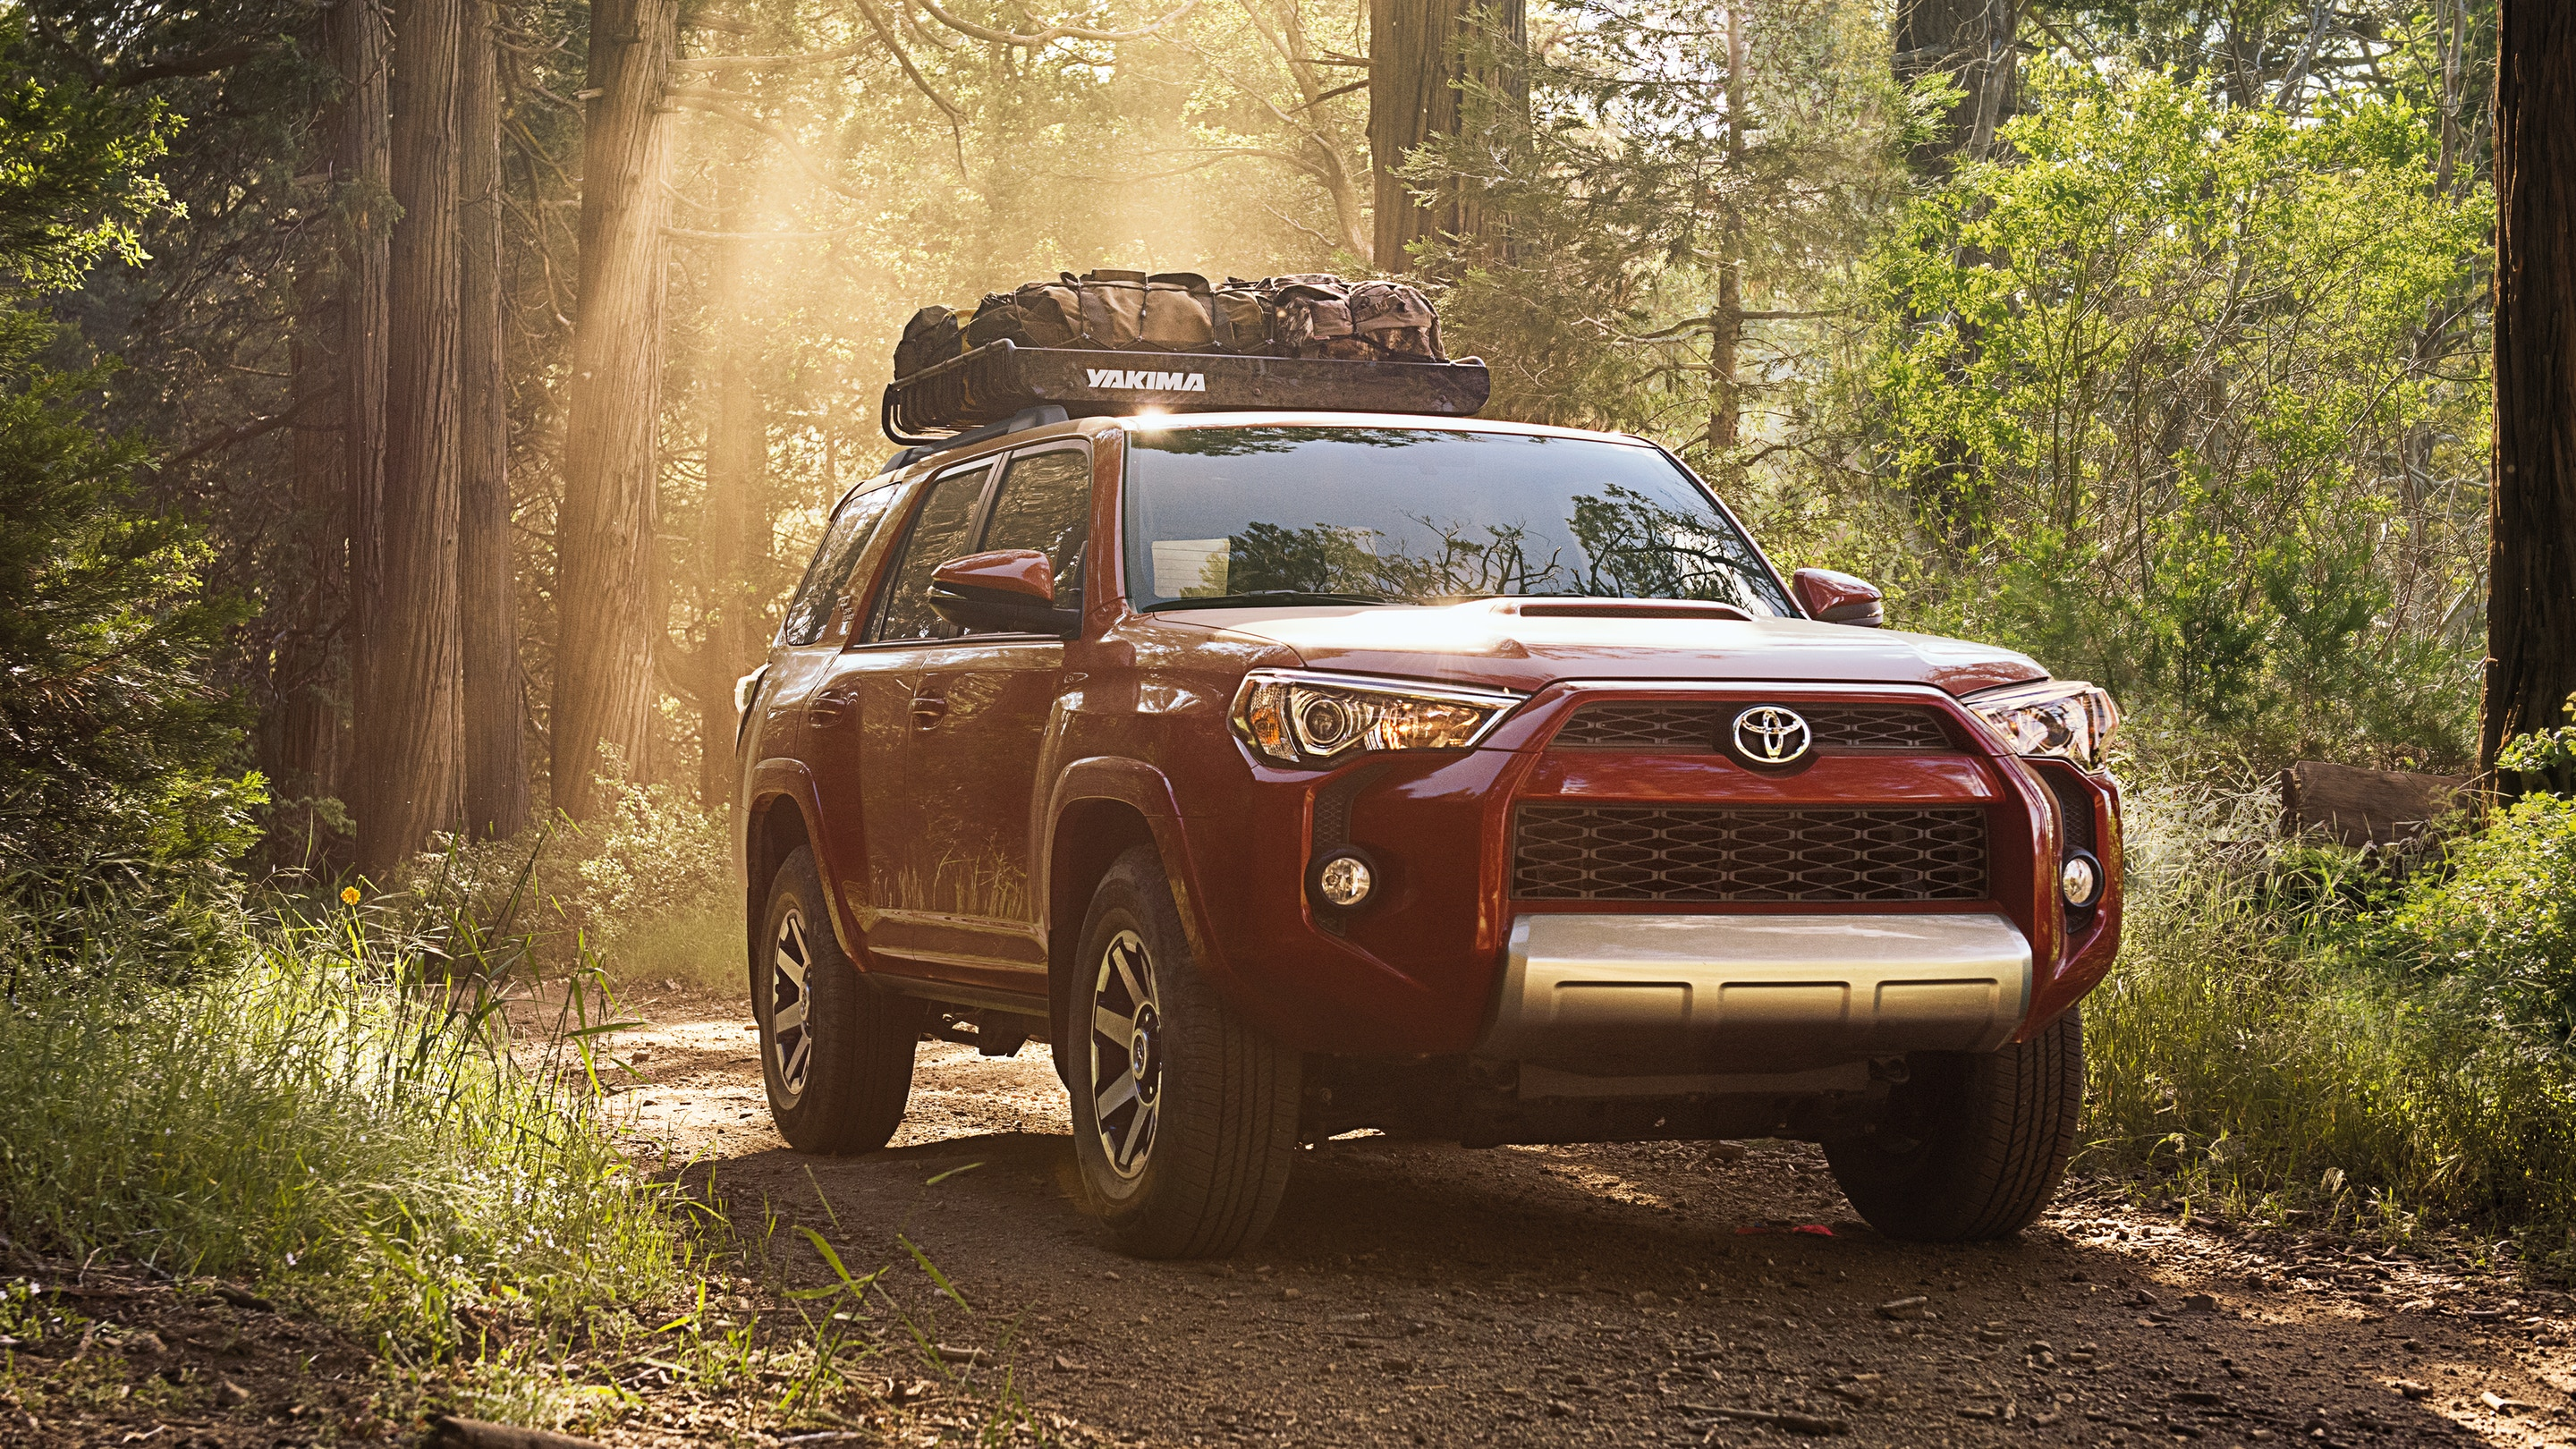 2019 4runner Toyota Of El Cajon For Sale Near Sienna Rear Differential Support Exterior Overview